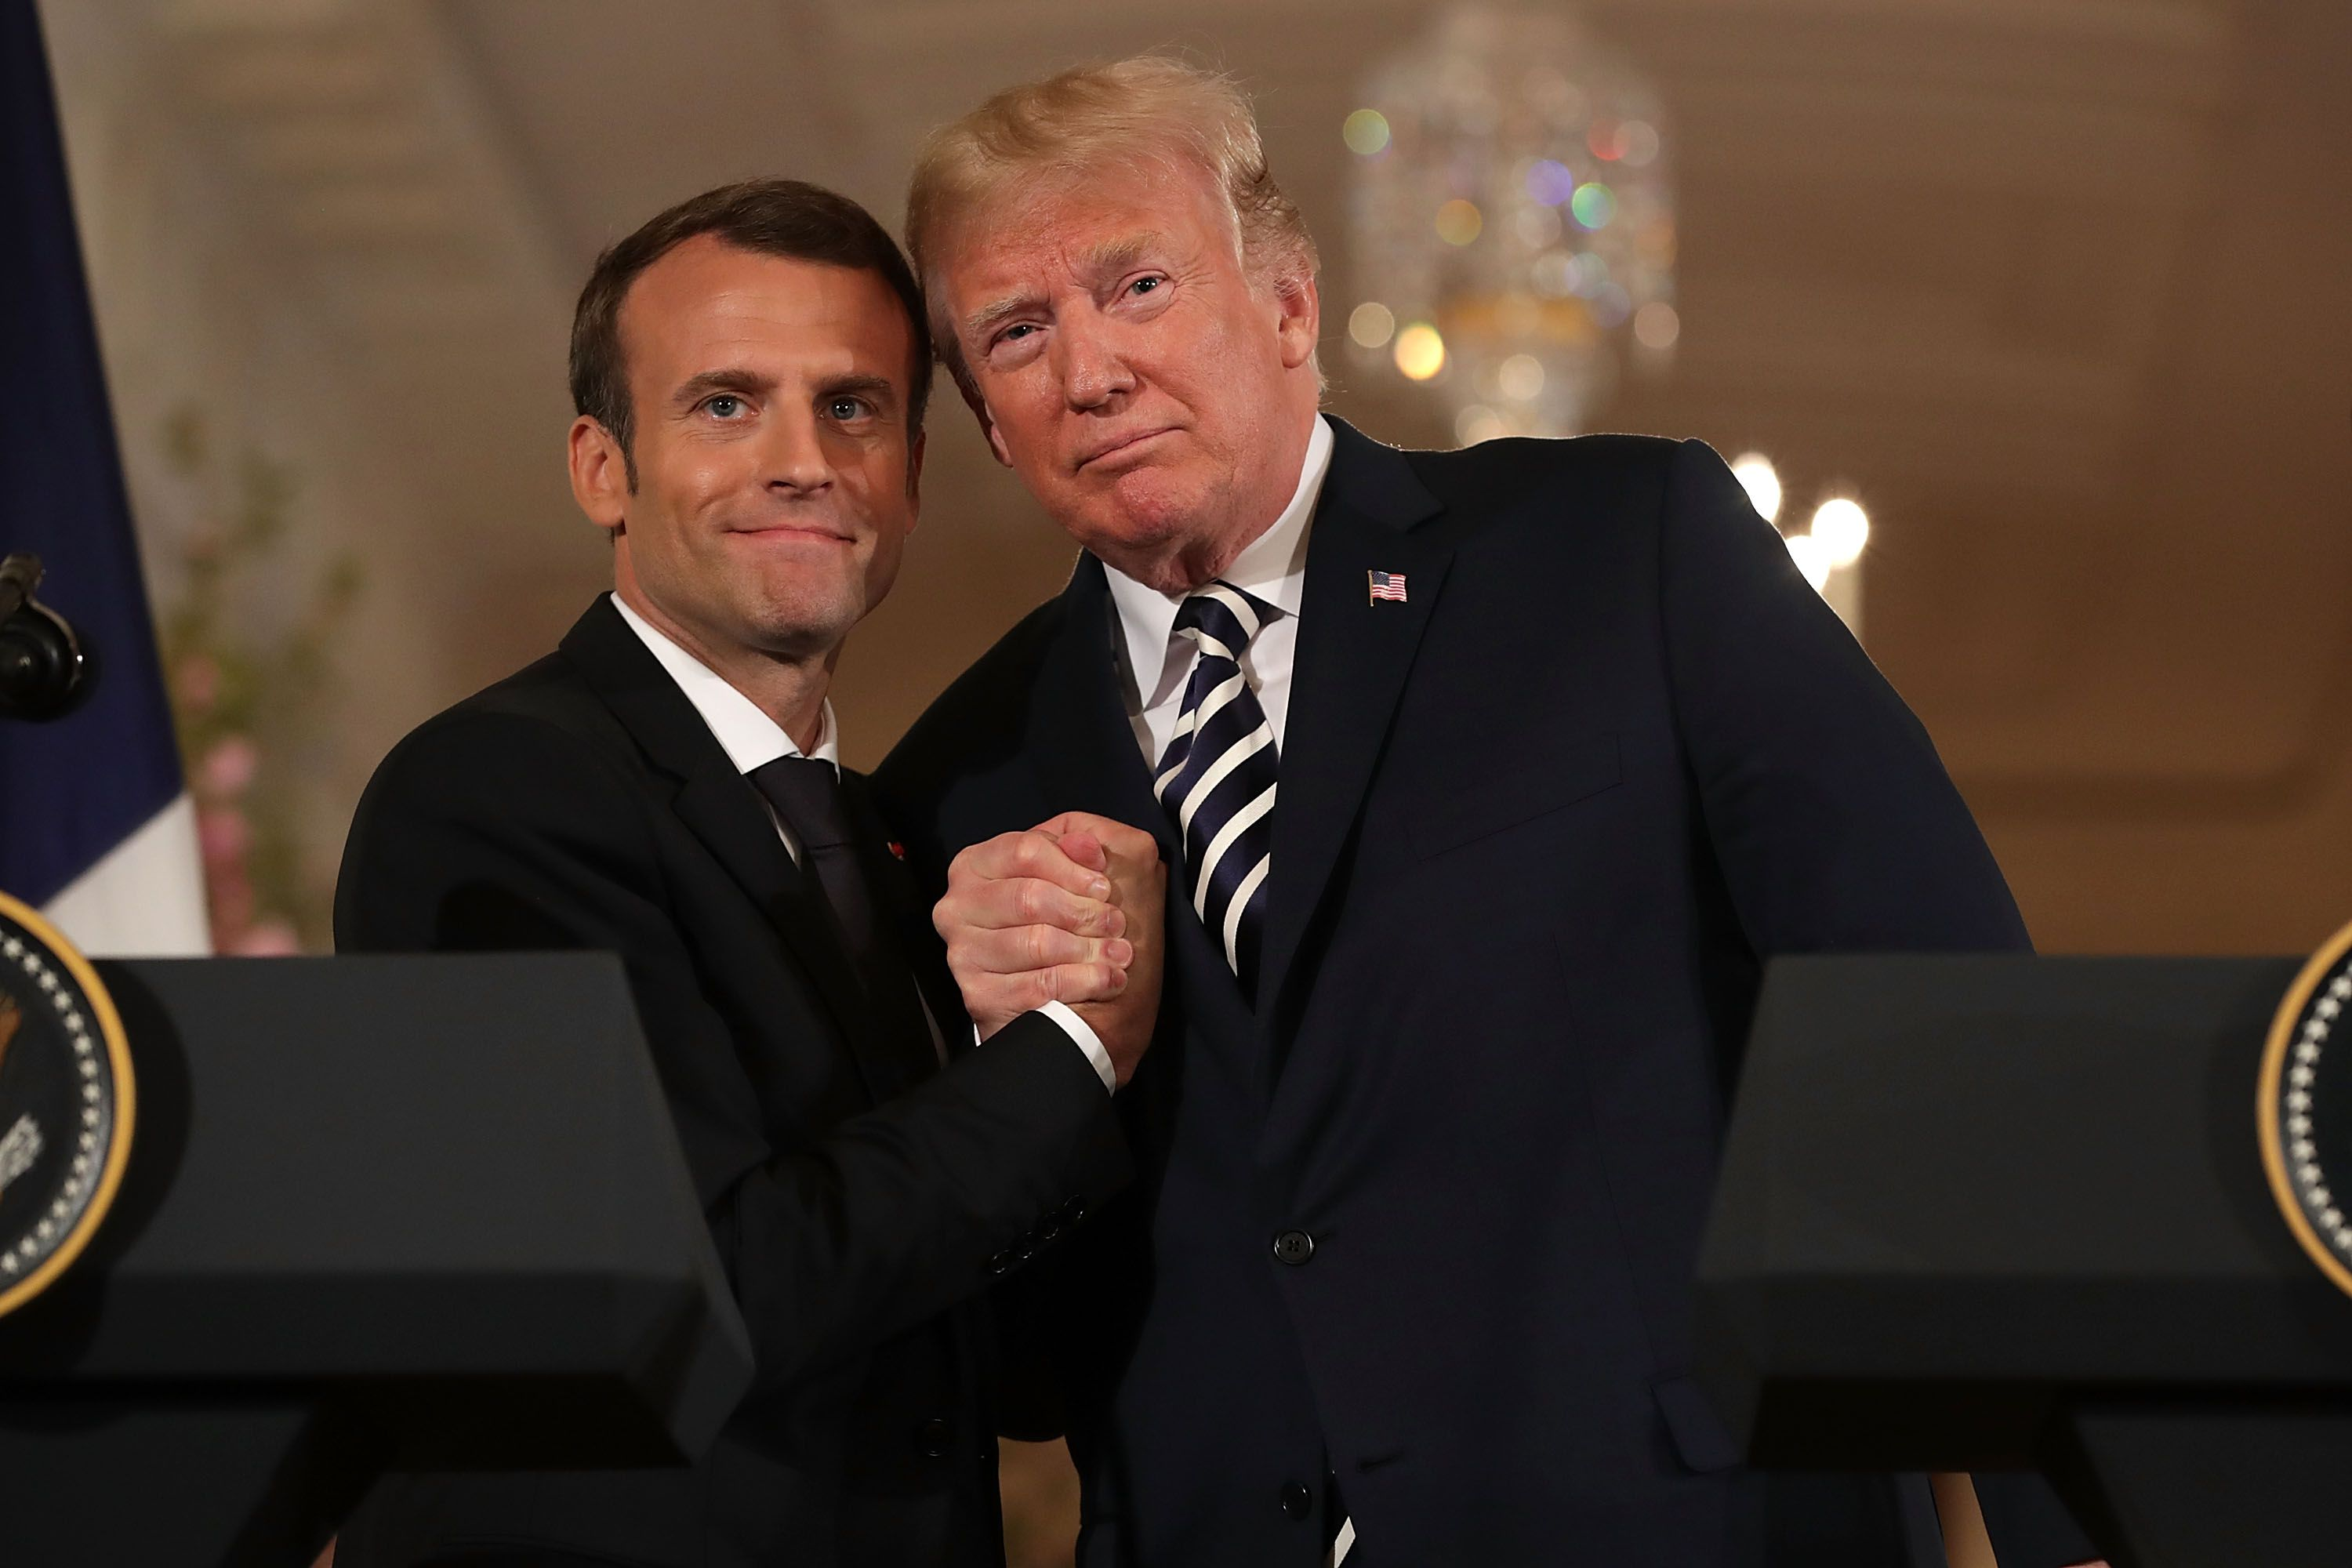 Macron and Trump clasp hands tightly